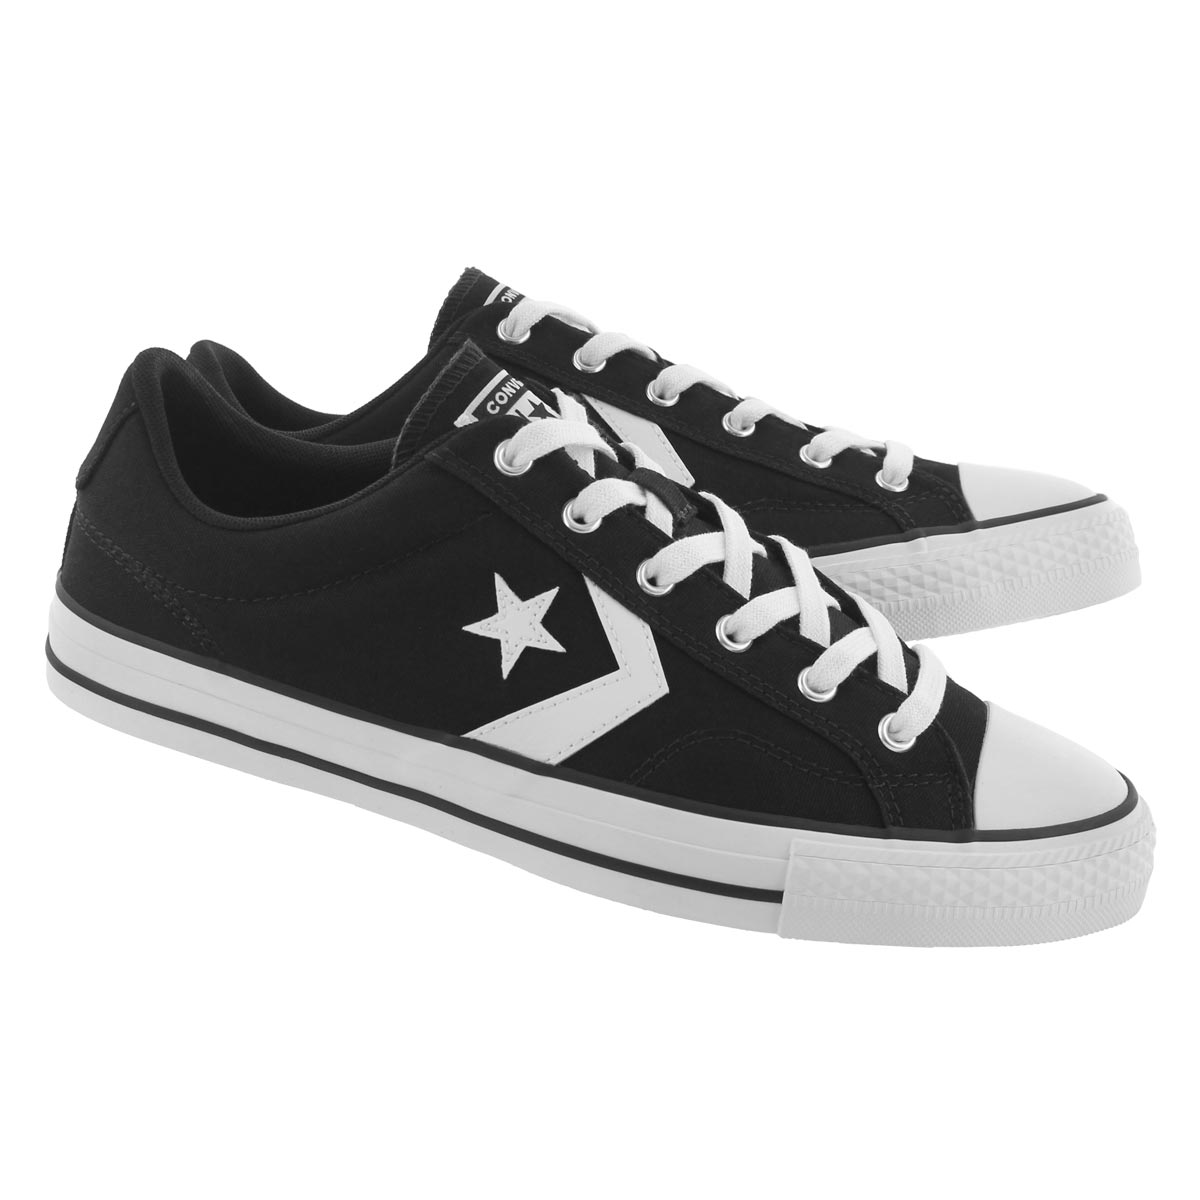 Mns CTAS Star Player blk/wht snkr